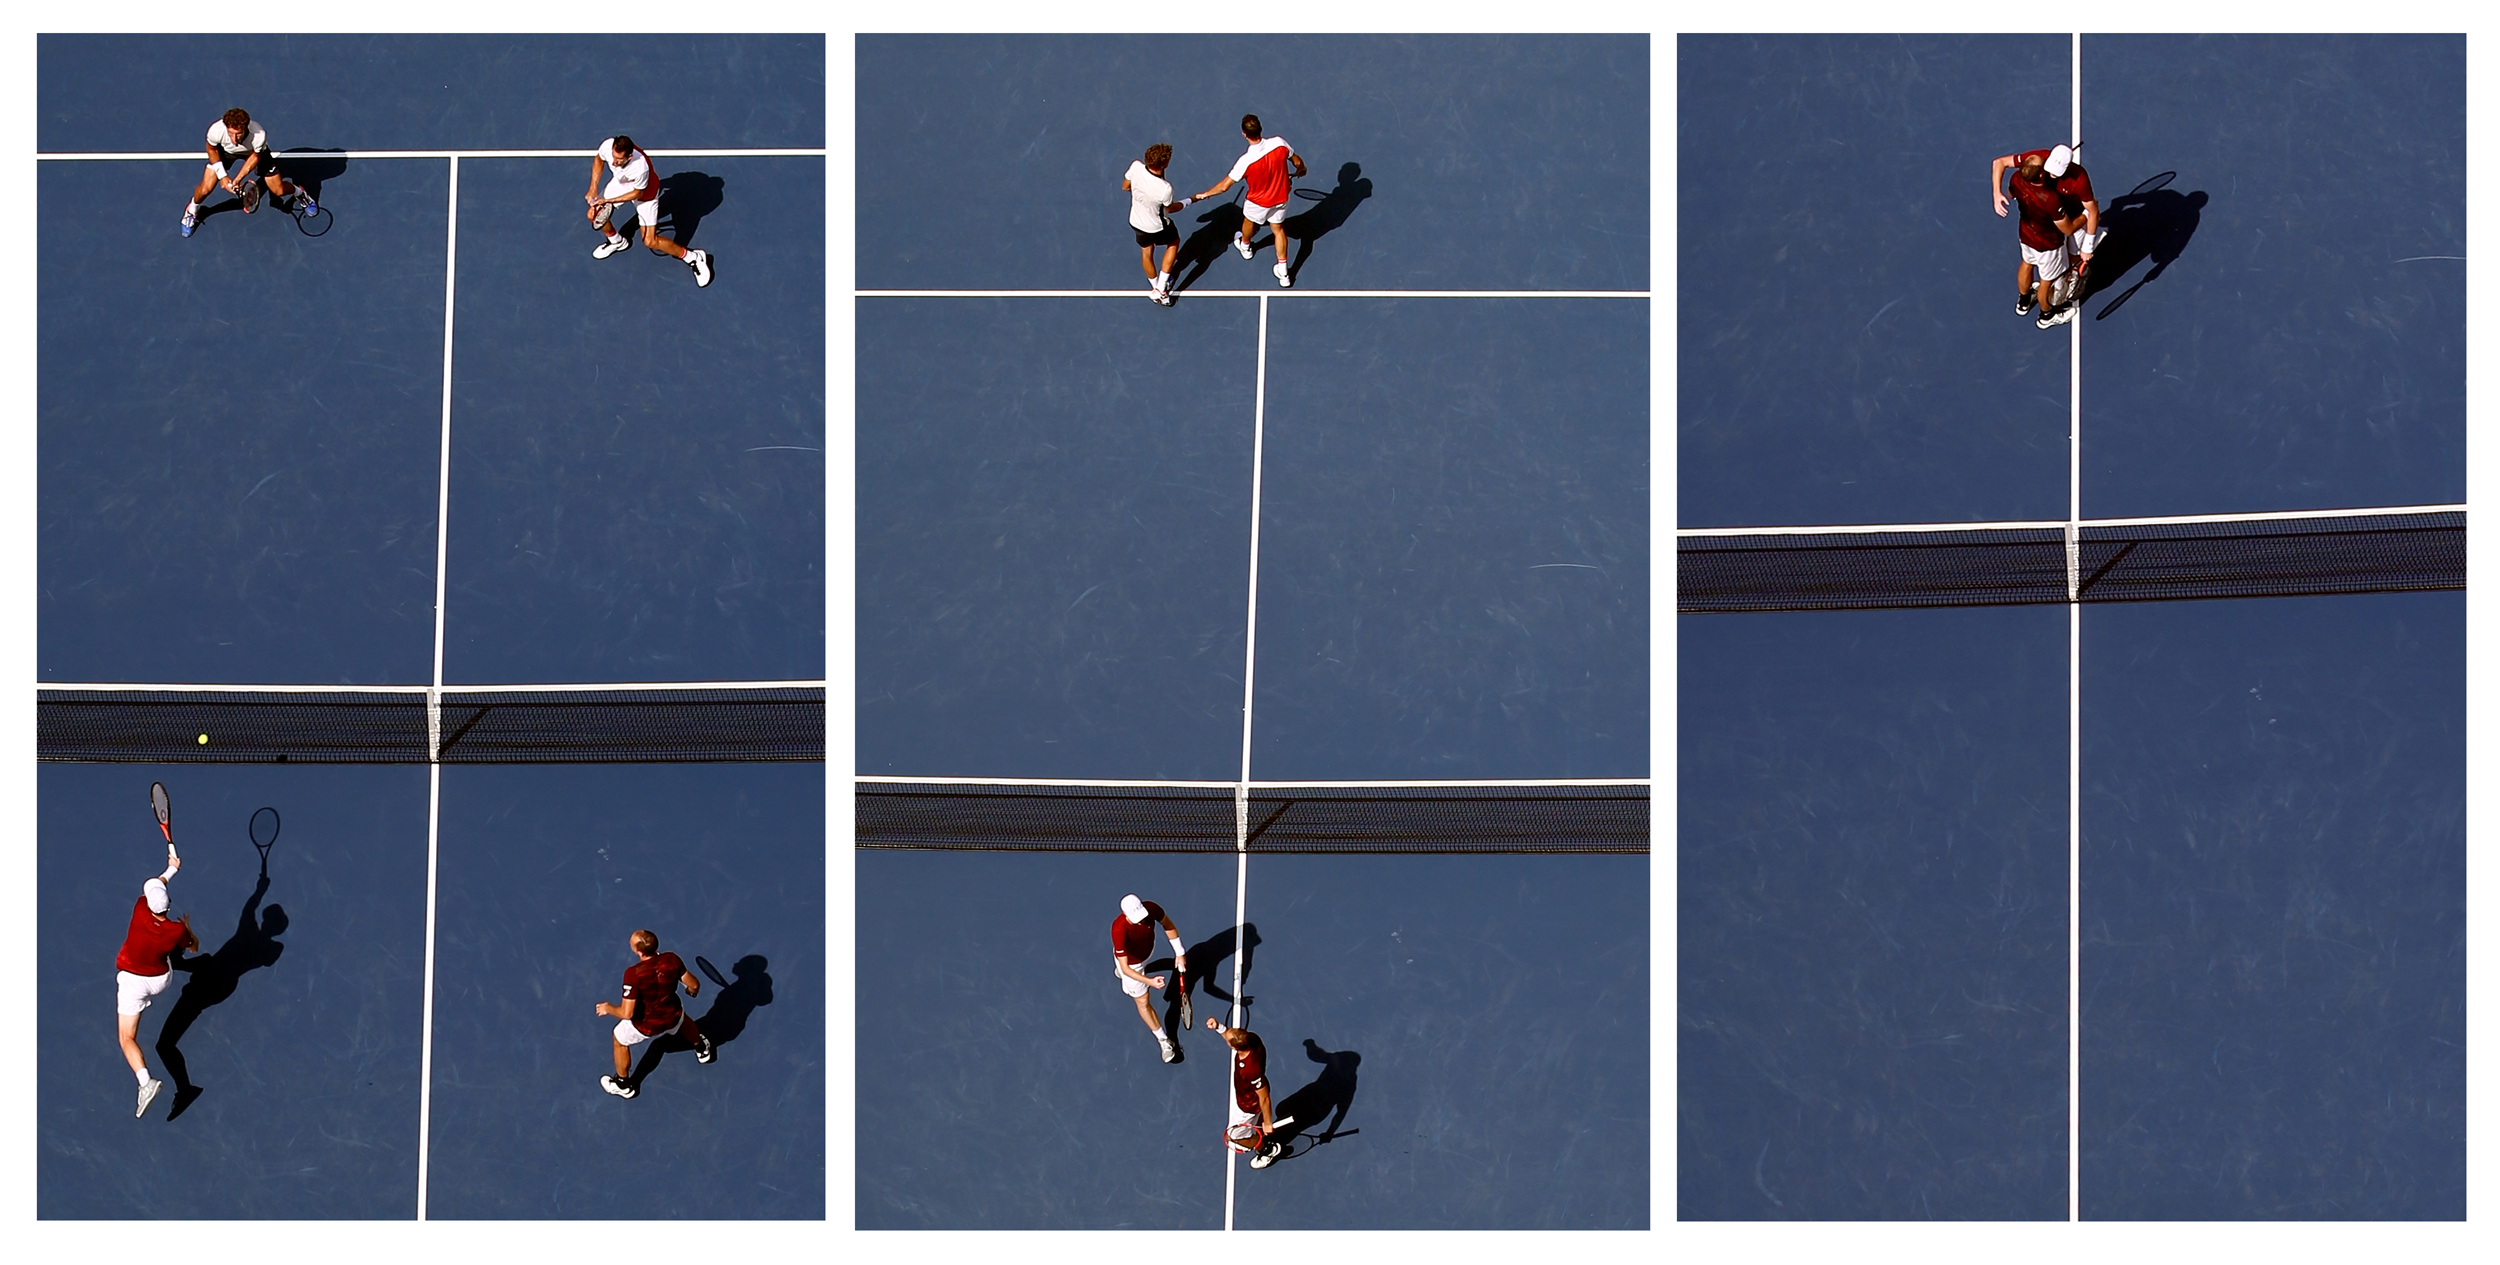 Jamie Murray (bottom L) of Great Britain and Bruno Soares (bottom R) of Brazil return a shot to Pablo Carreno Busta (top L) and Guillermo Garcia-Lopez (Top R) of Spain during their Men's Doubles Final Match